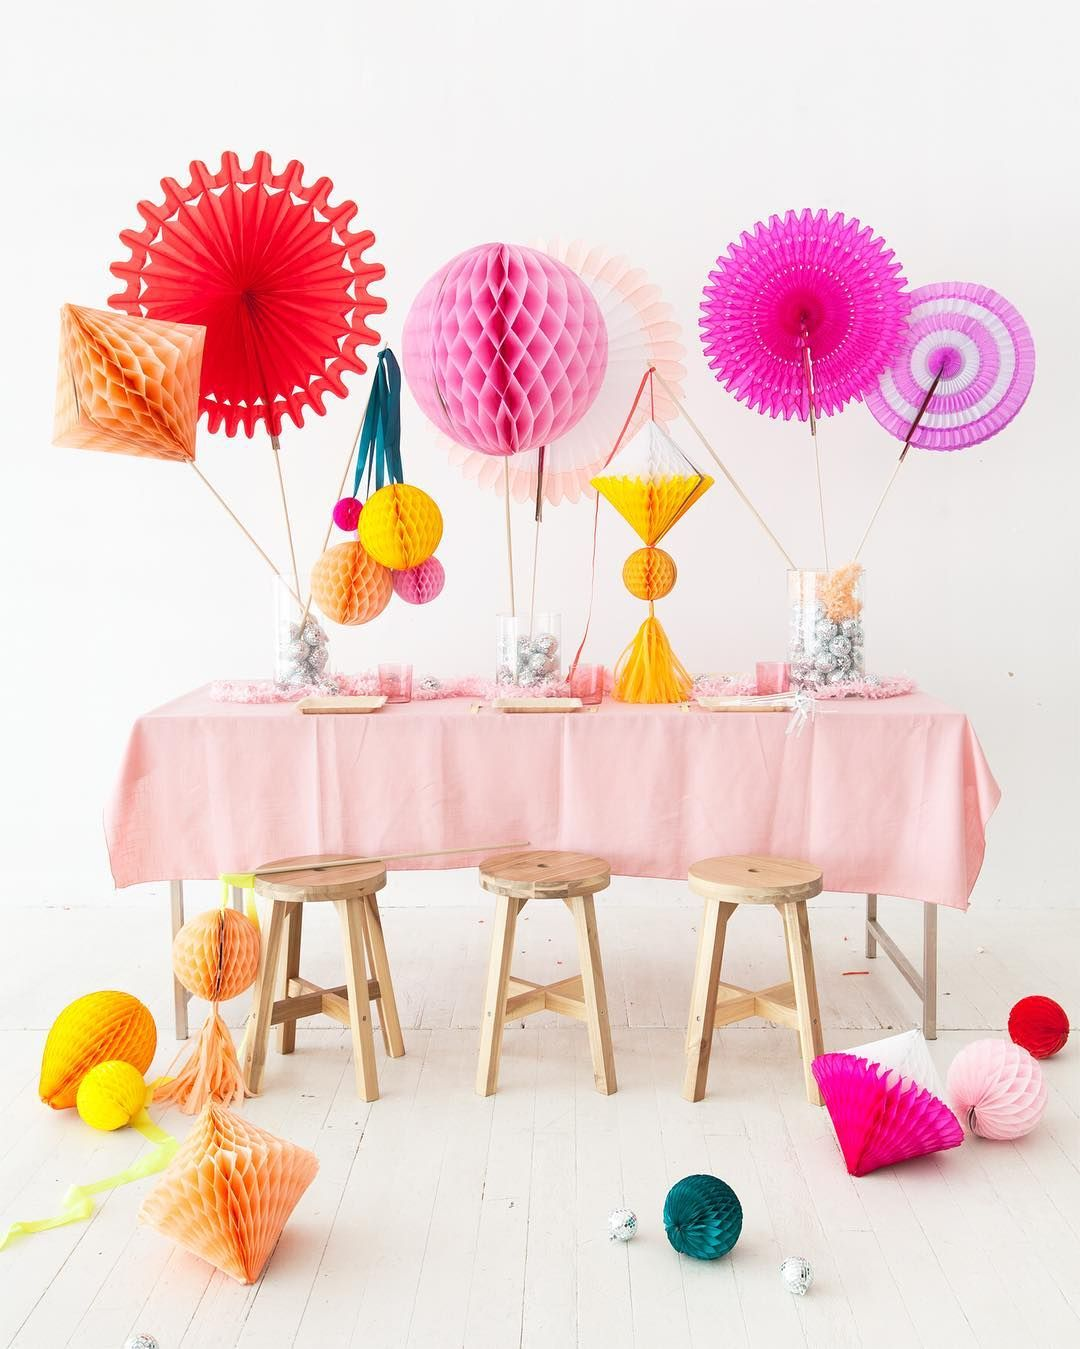 Add a pop of color to any party! These honeycombs come in all colors, shapes and sizes. Find your favorite at shop.ohhappyday.com 🍭